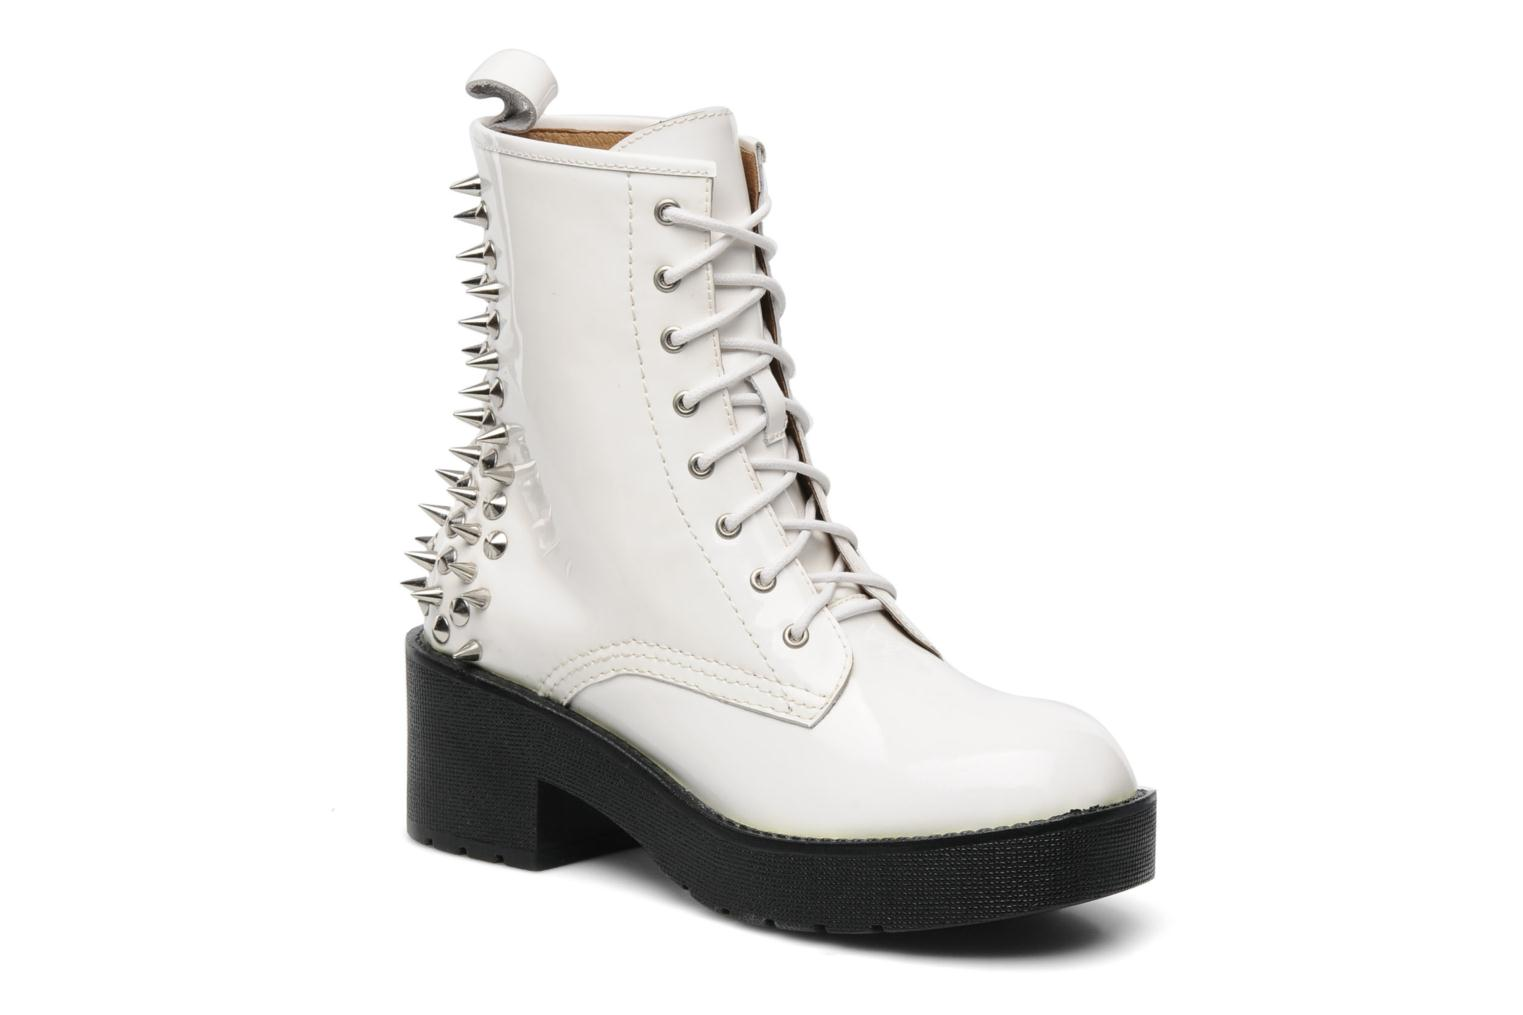 Jeffrey Campbell 8th Street Ankle Boots In White At